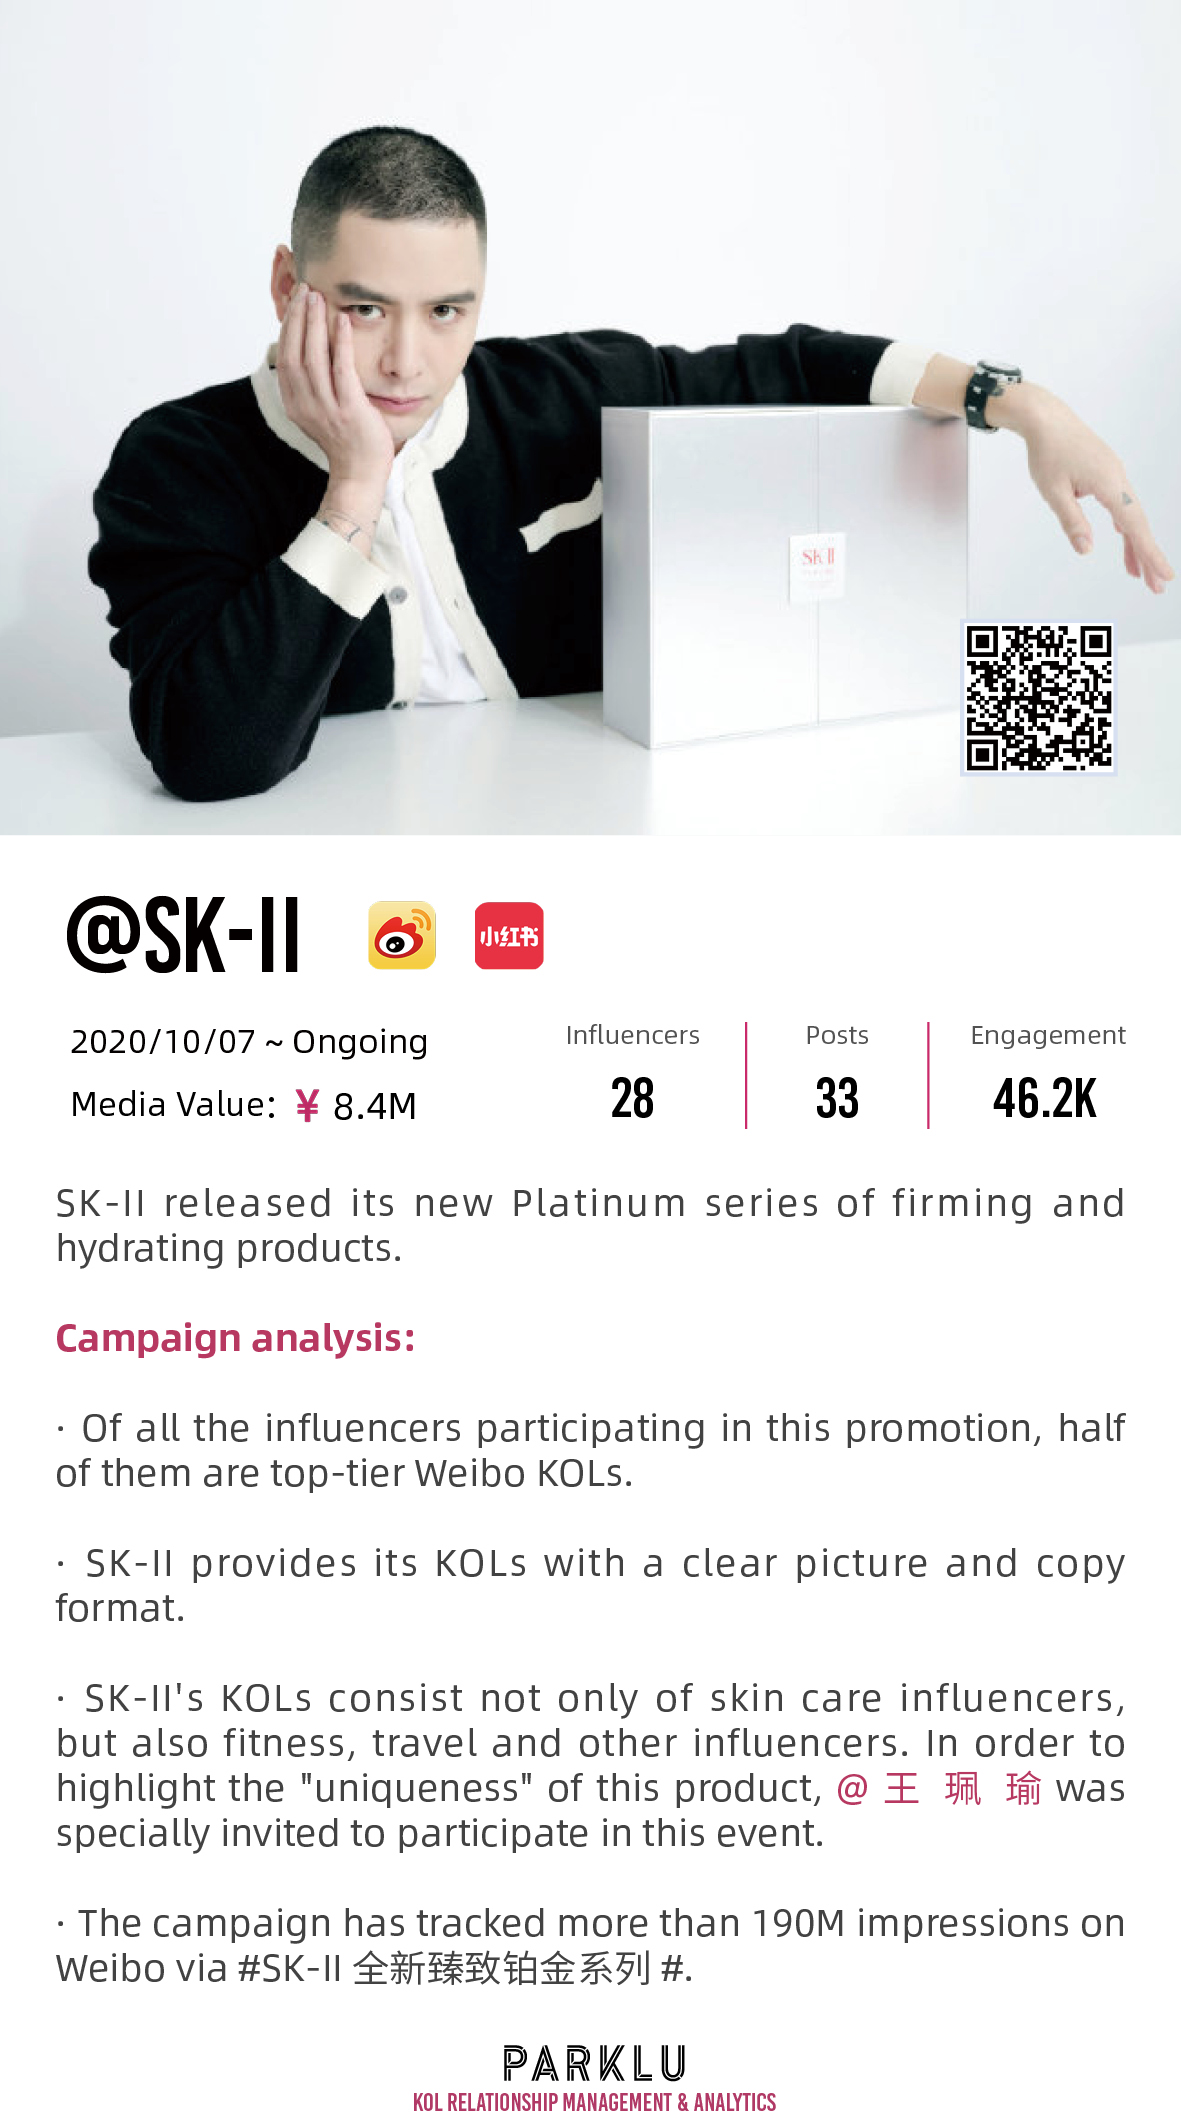 SK-II released its new Platinum series of firming and hydrating products